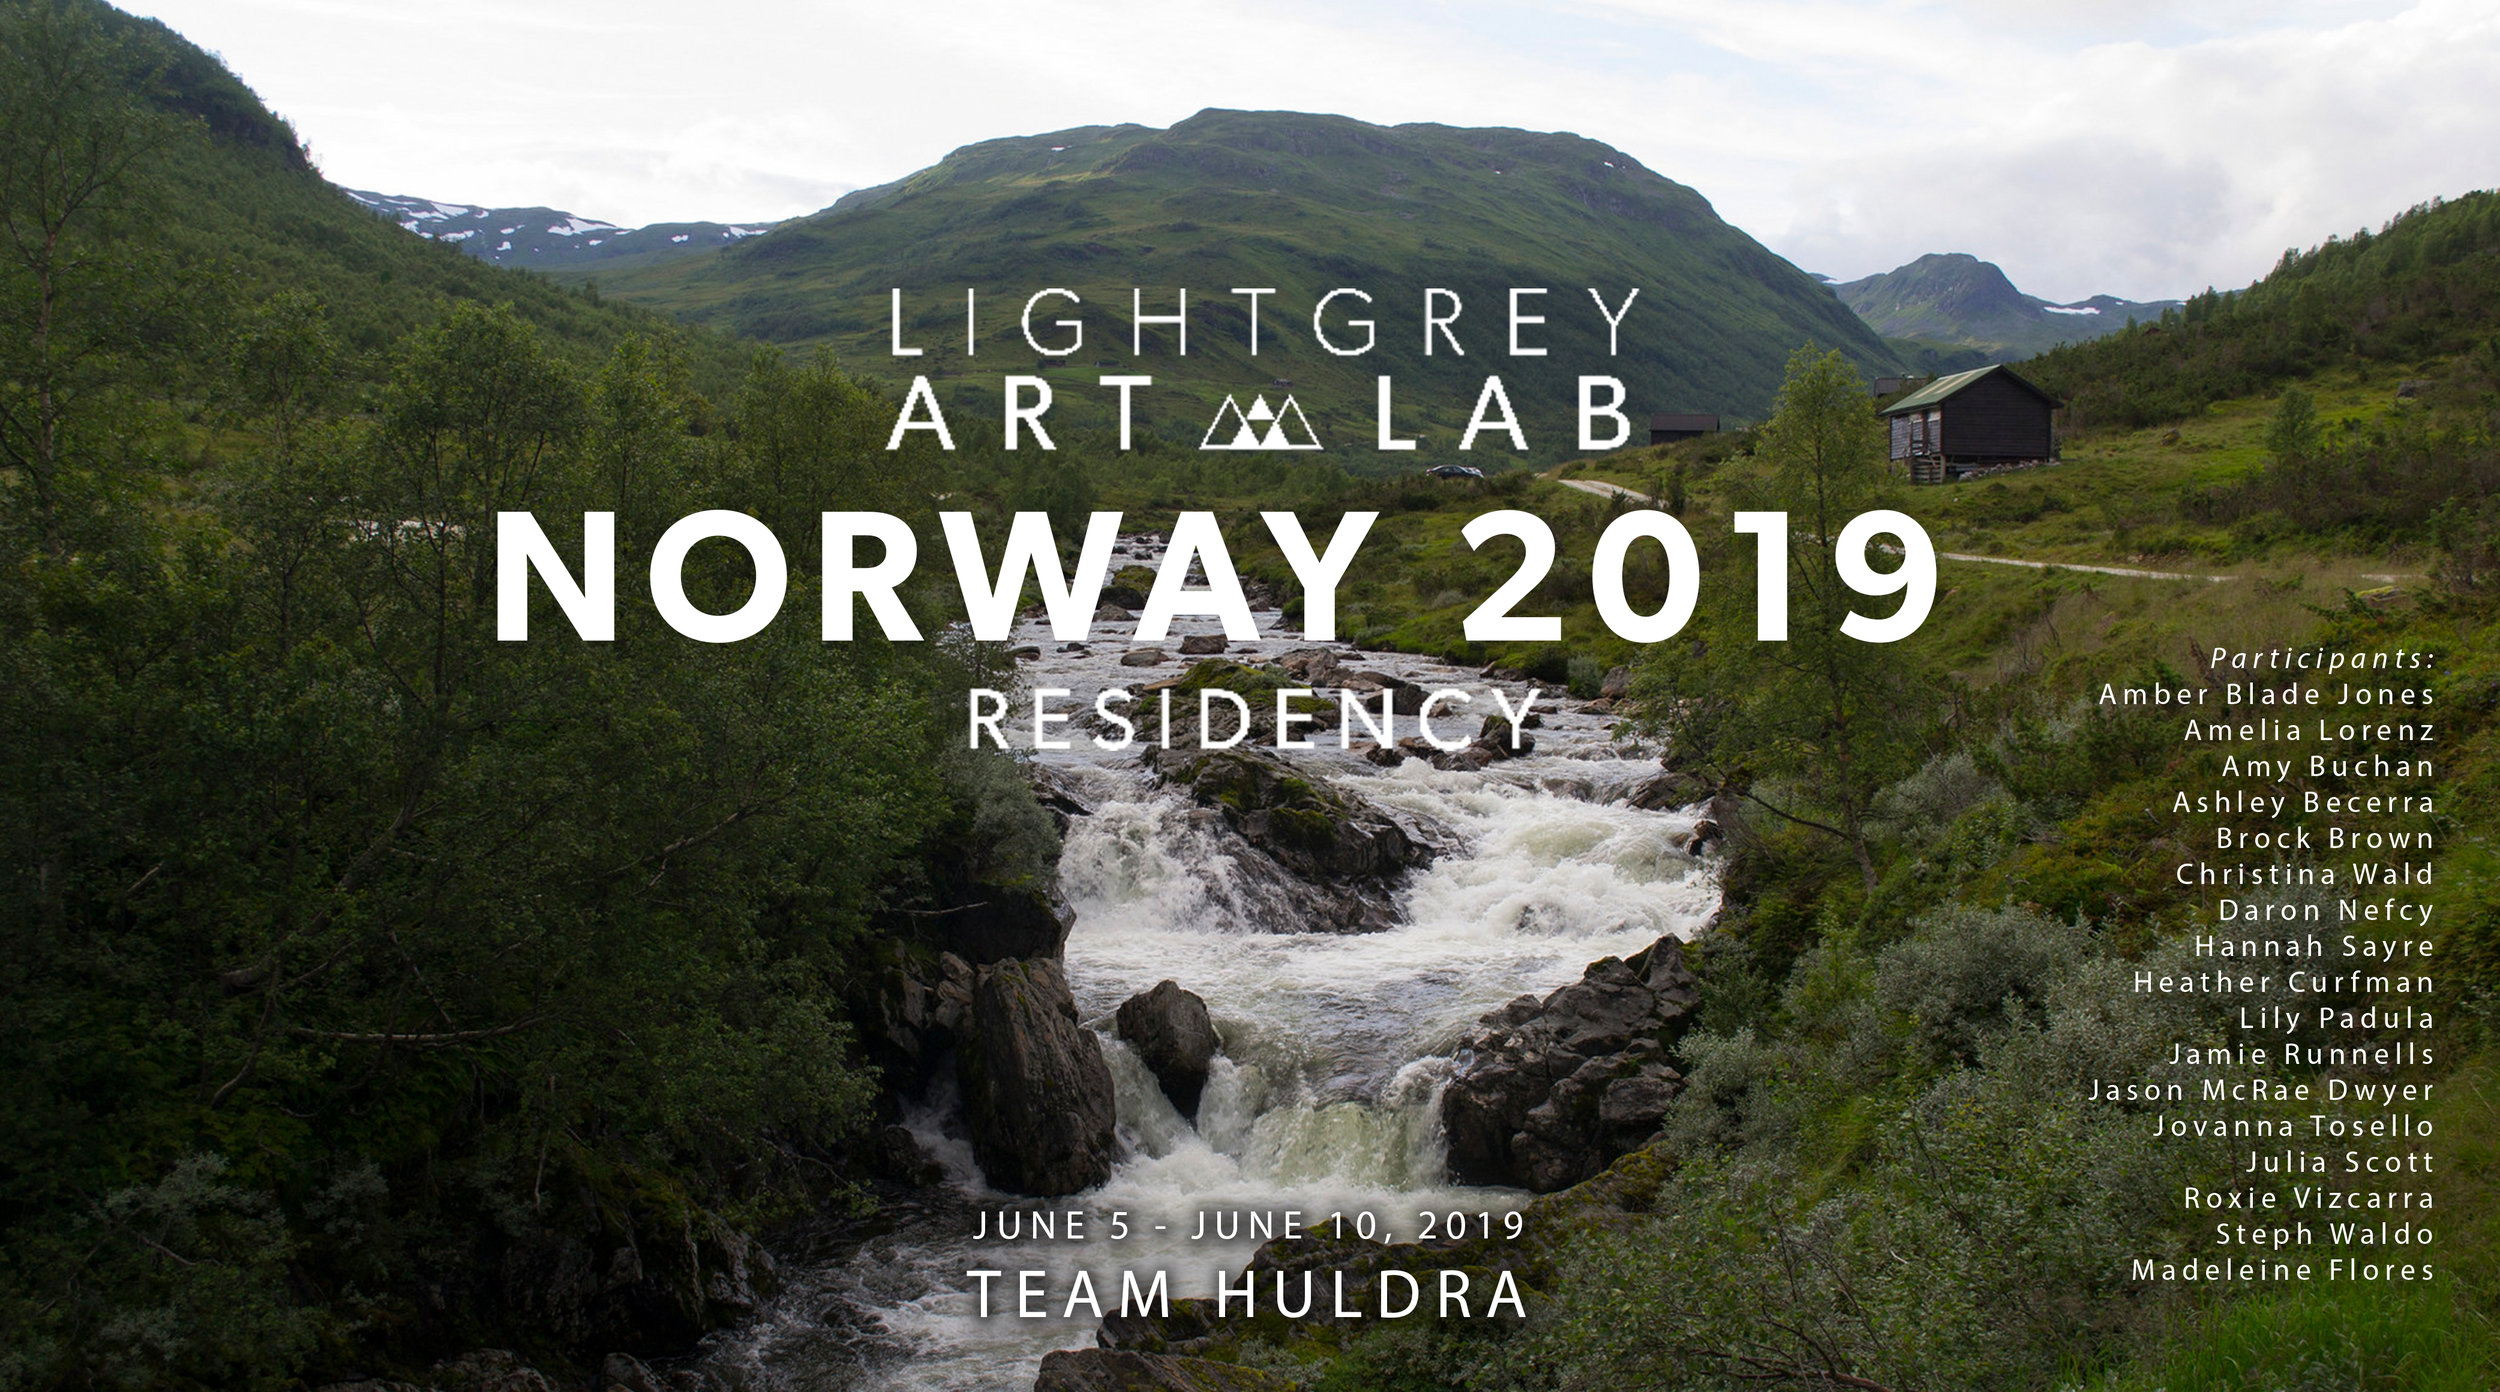 Team_working_Norway2019.jpg